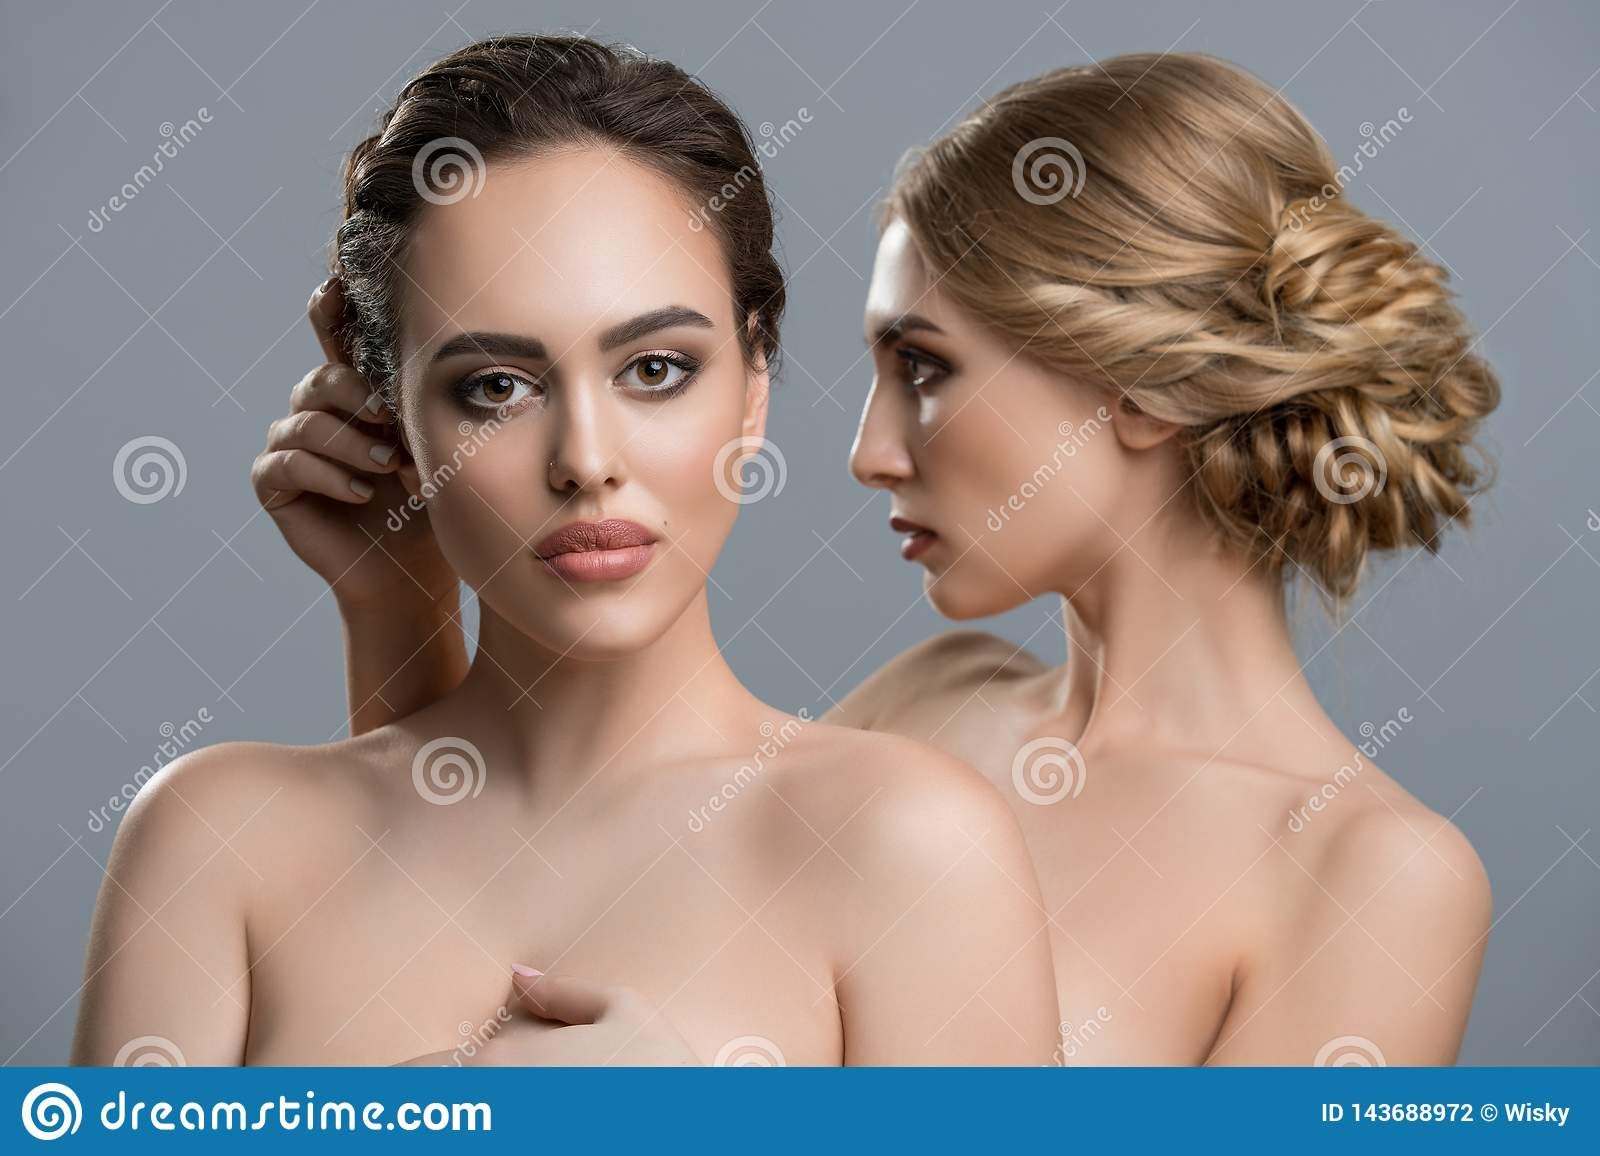 Two Gorgeous Women Topless Portrait Stock Photo Image Of Adult Beautiful 143688972